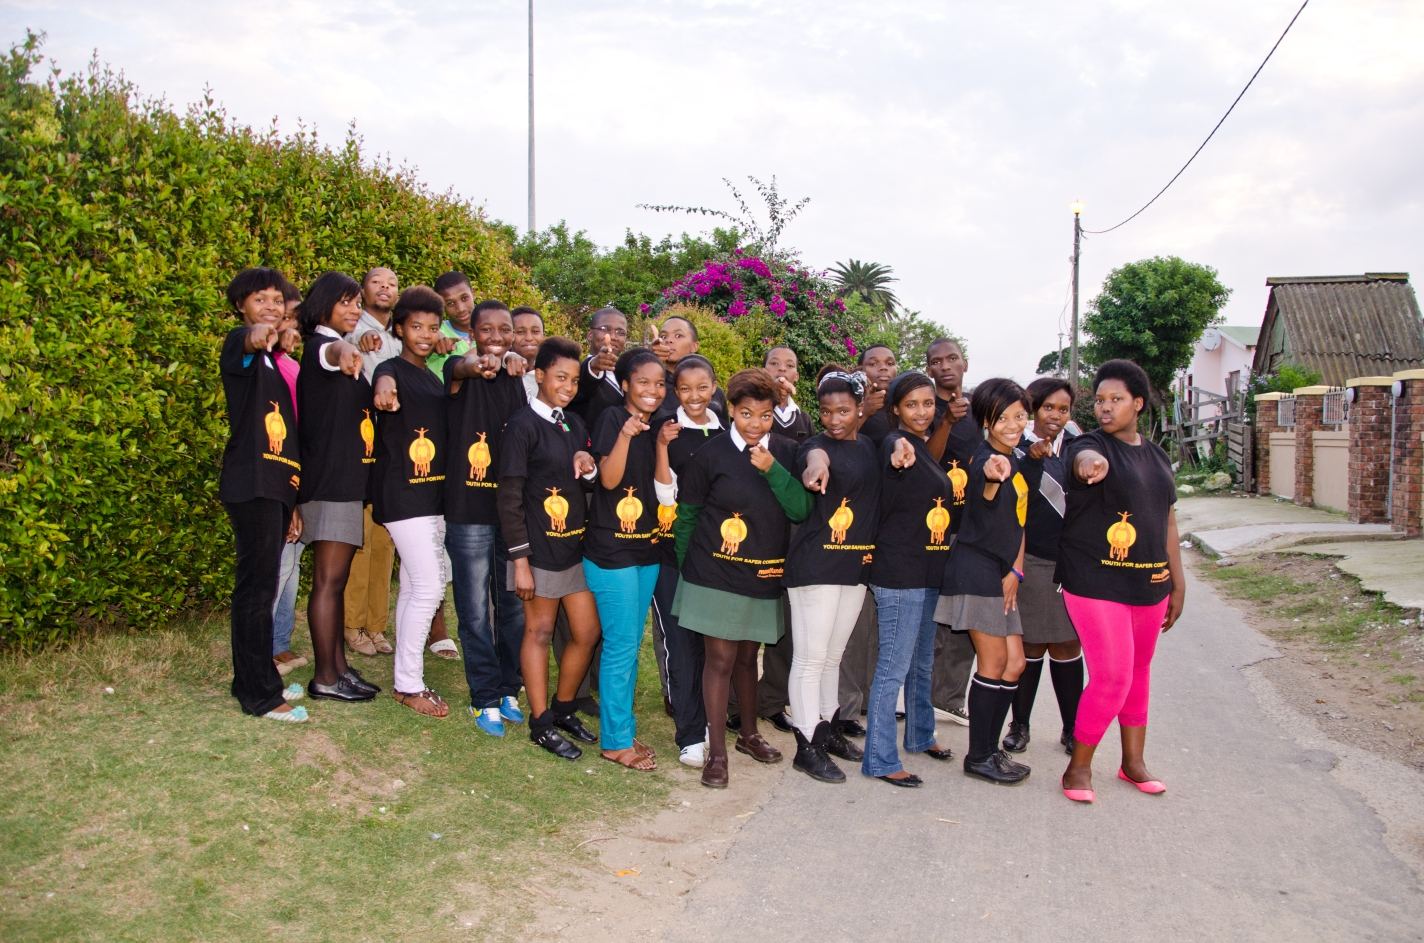 Youth for safer communities